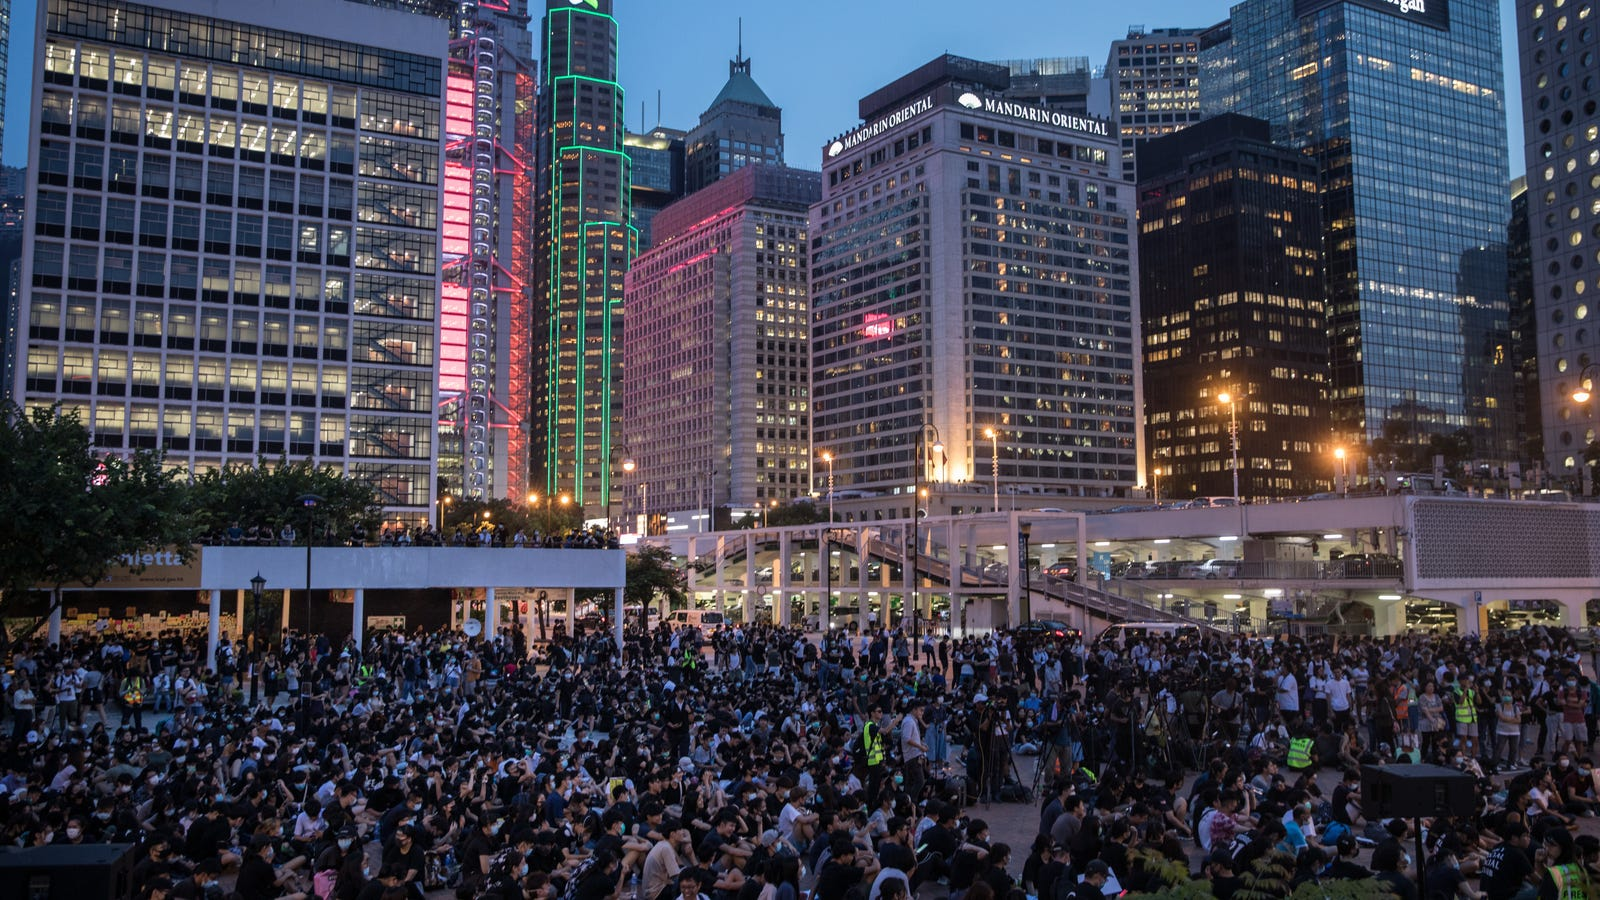 YouTube Dismantles 'Influence Operation' Targeting Hong Kong Protests, Avoids Discussing Its Reach